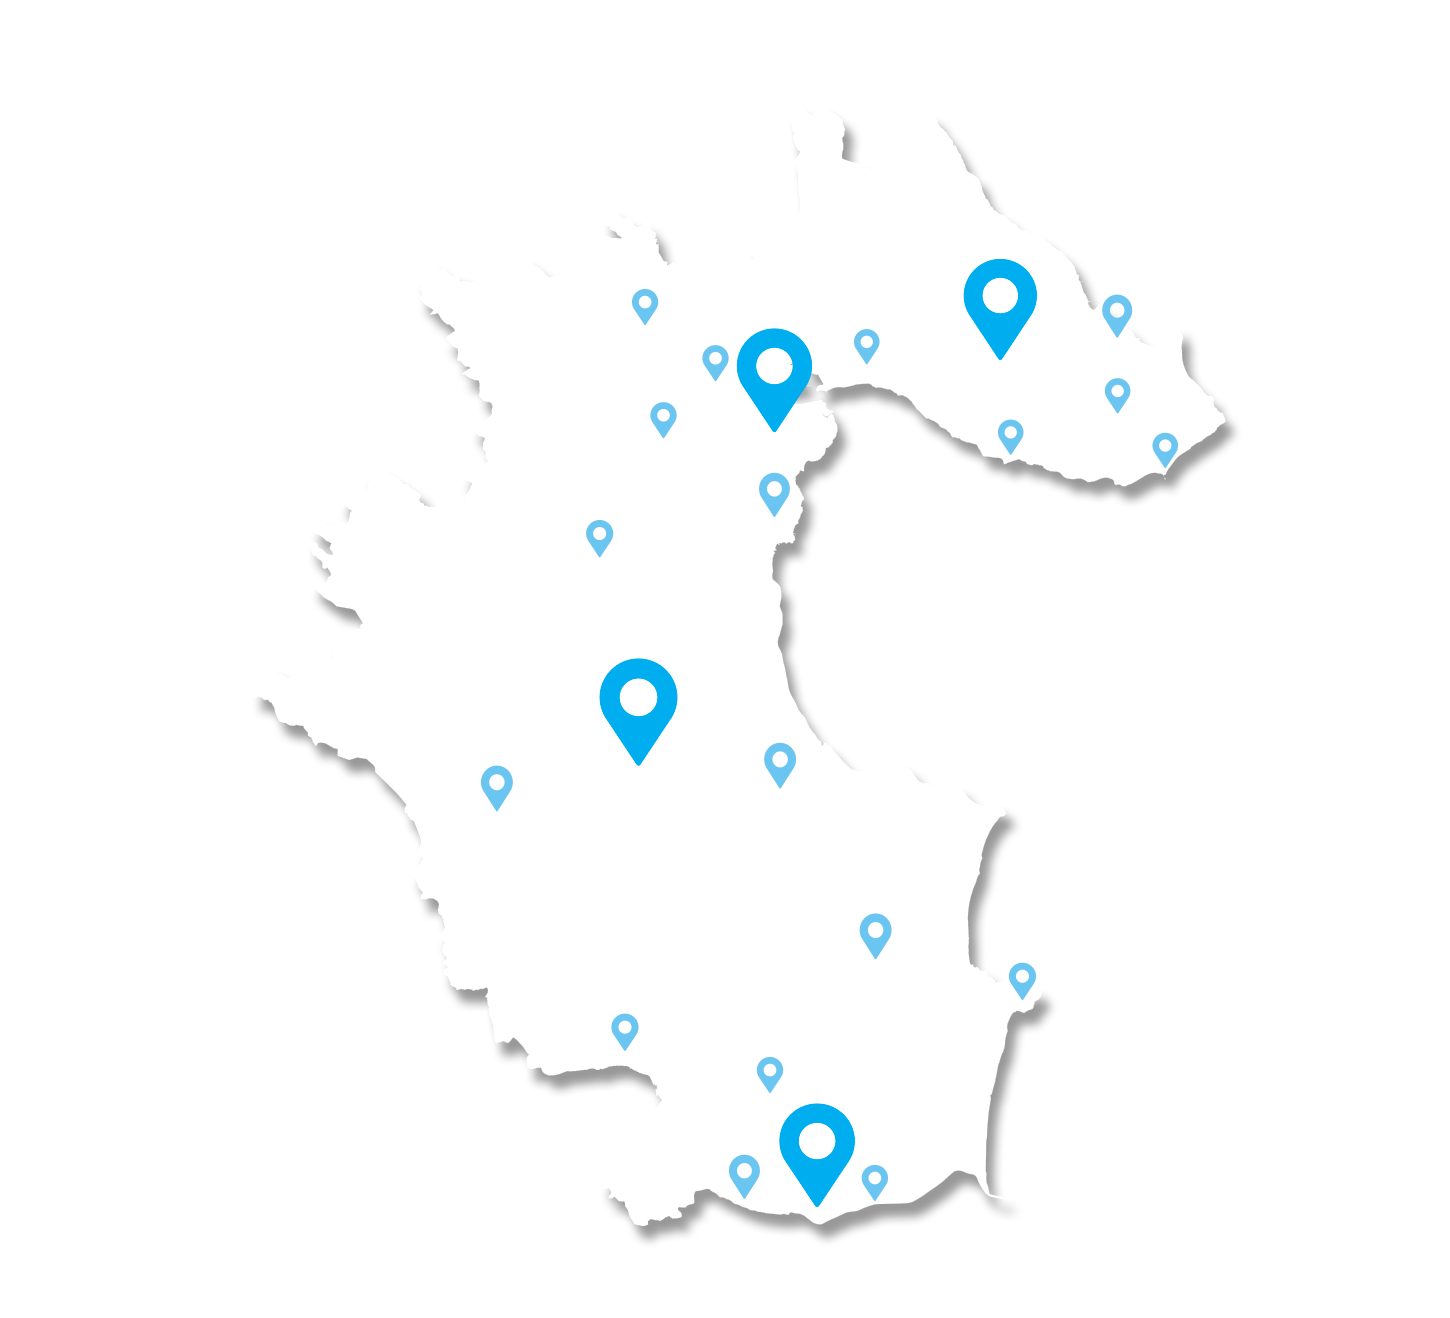 louth-map-find-locations.png